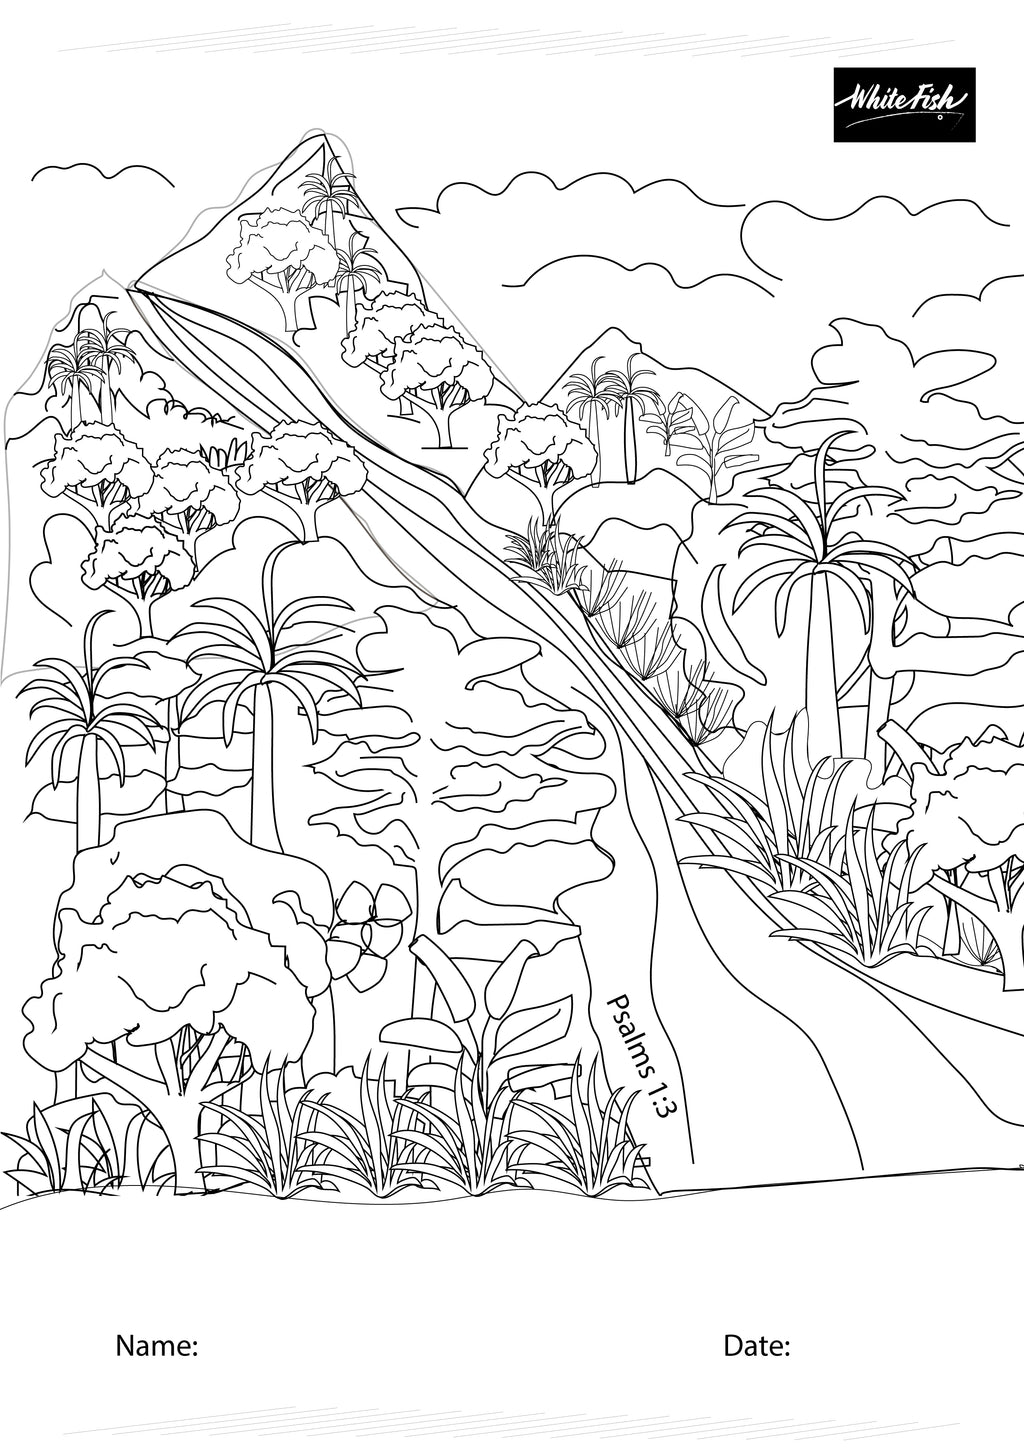 FREE Download themed coloring page